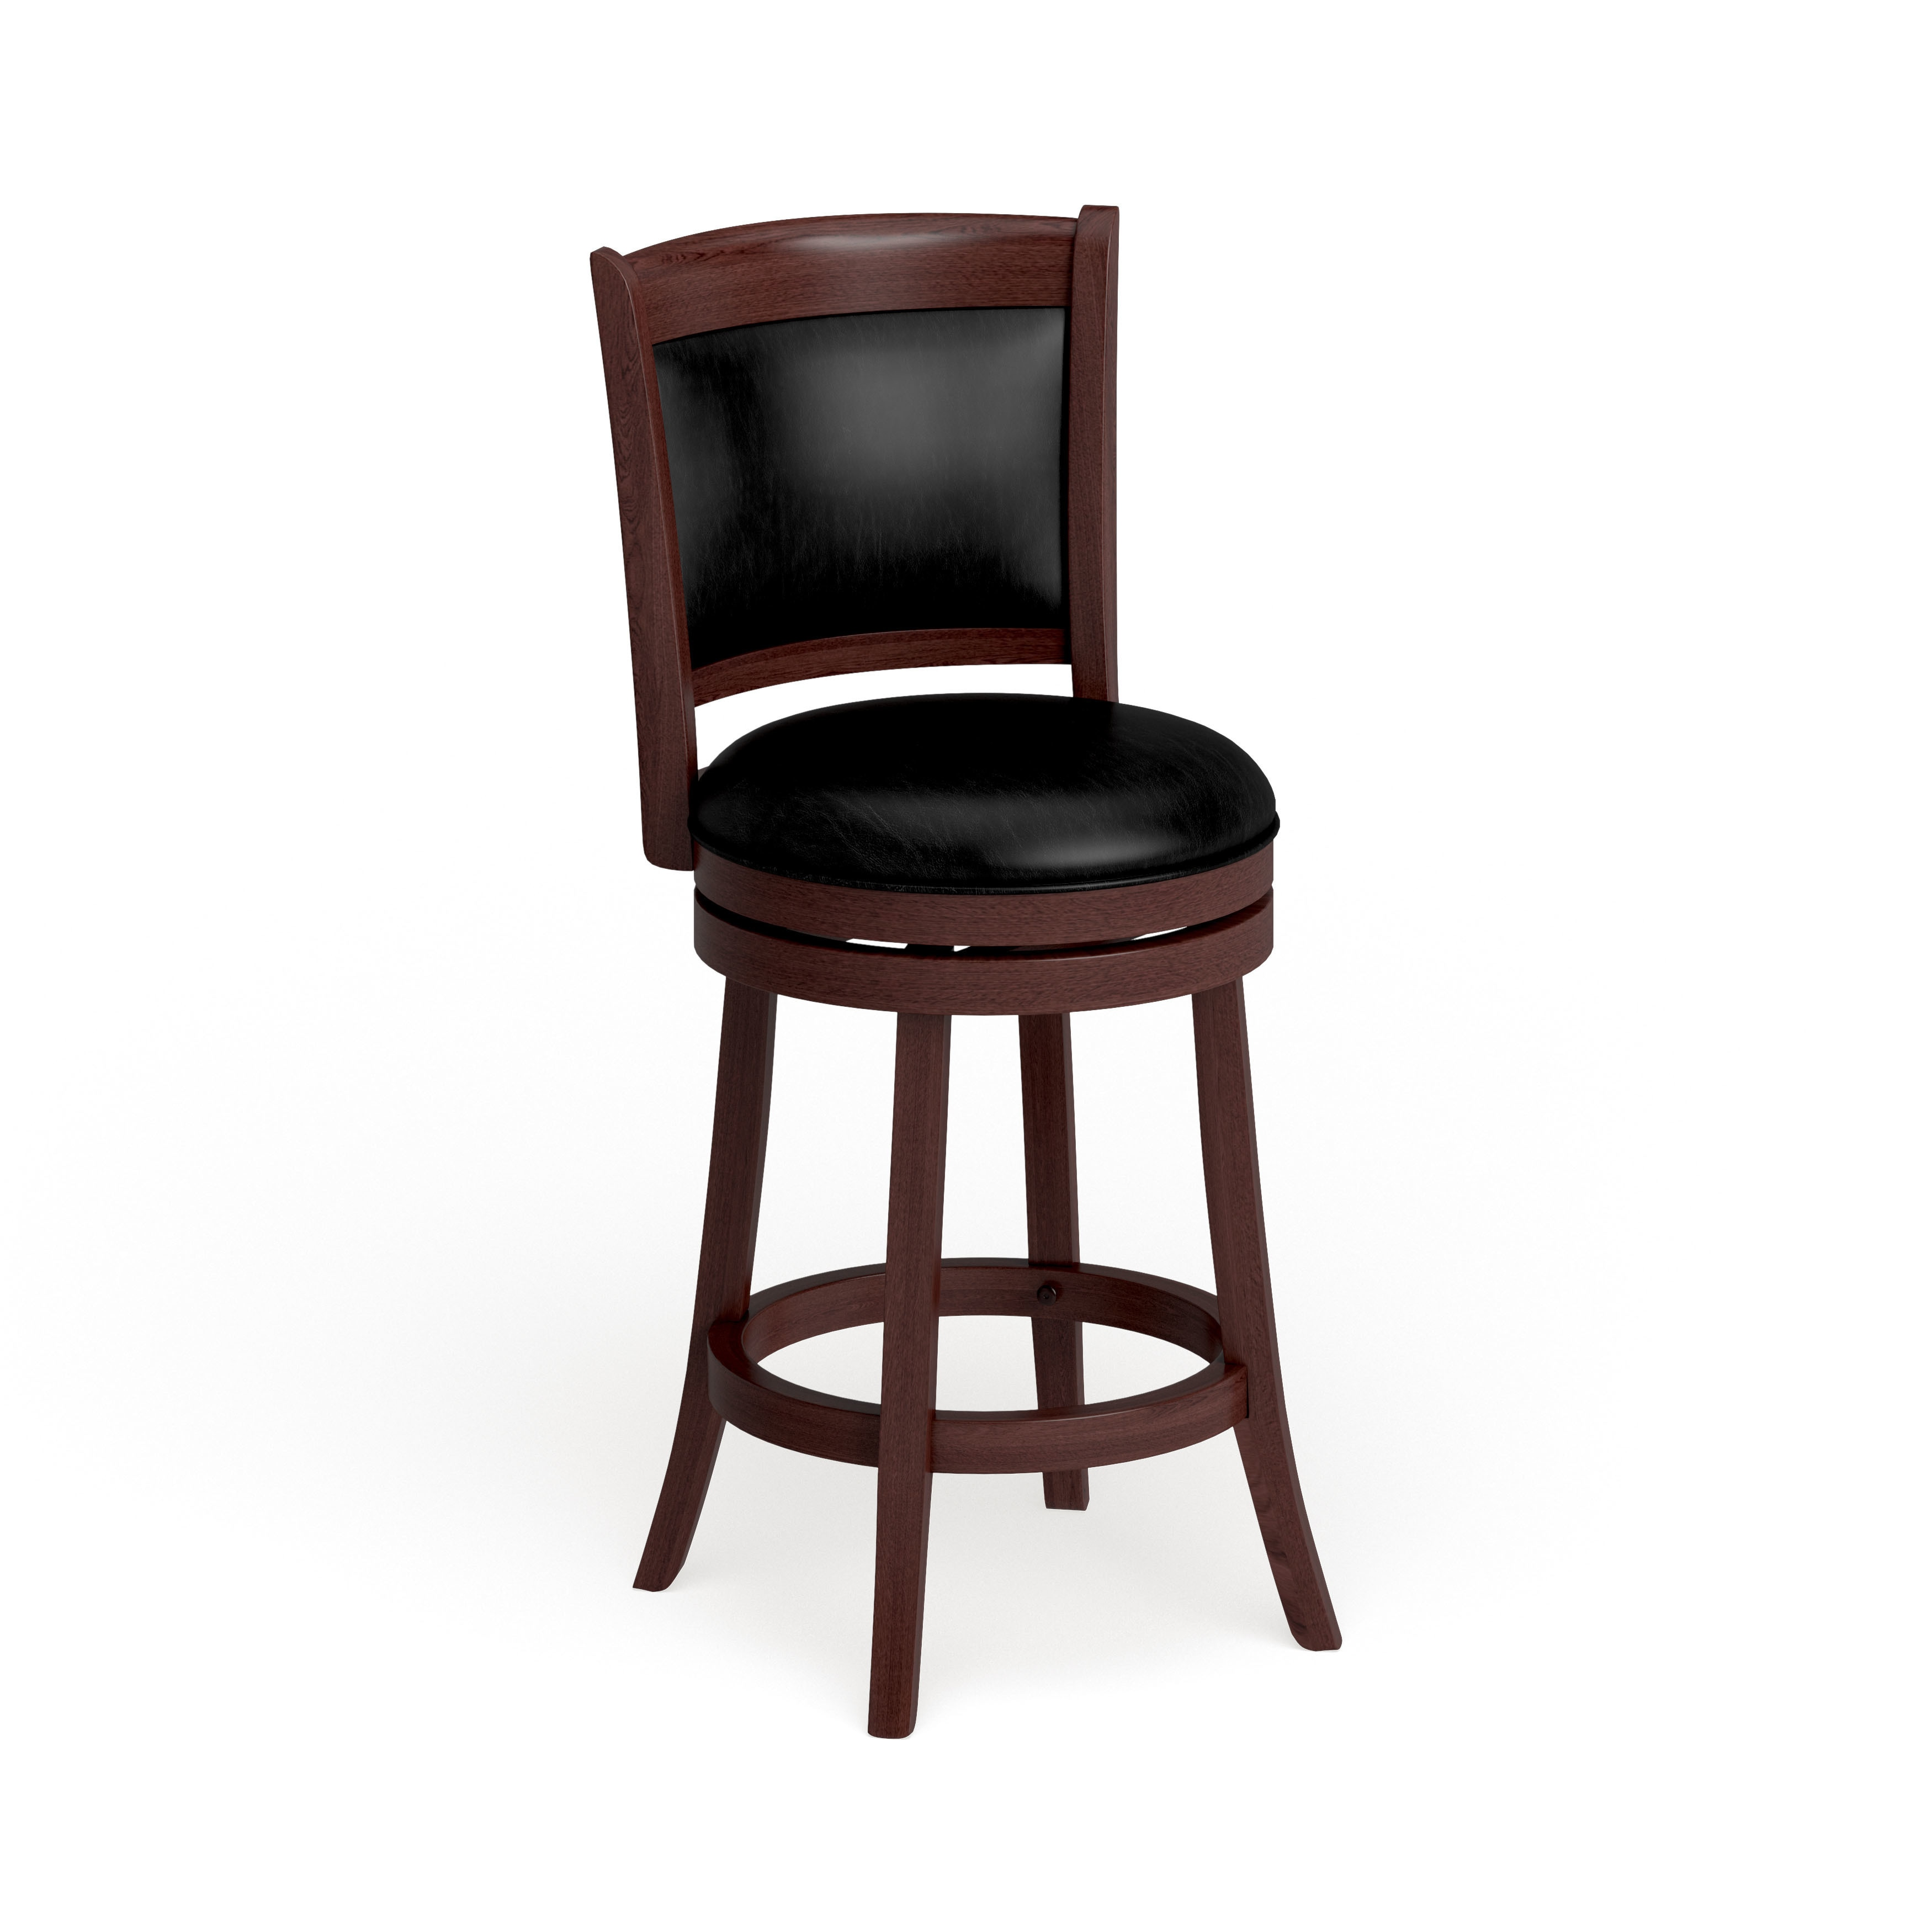 Bar Stools For Sale Buy Counter Bar Stools Online At Overstock Our Best Dining